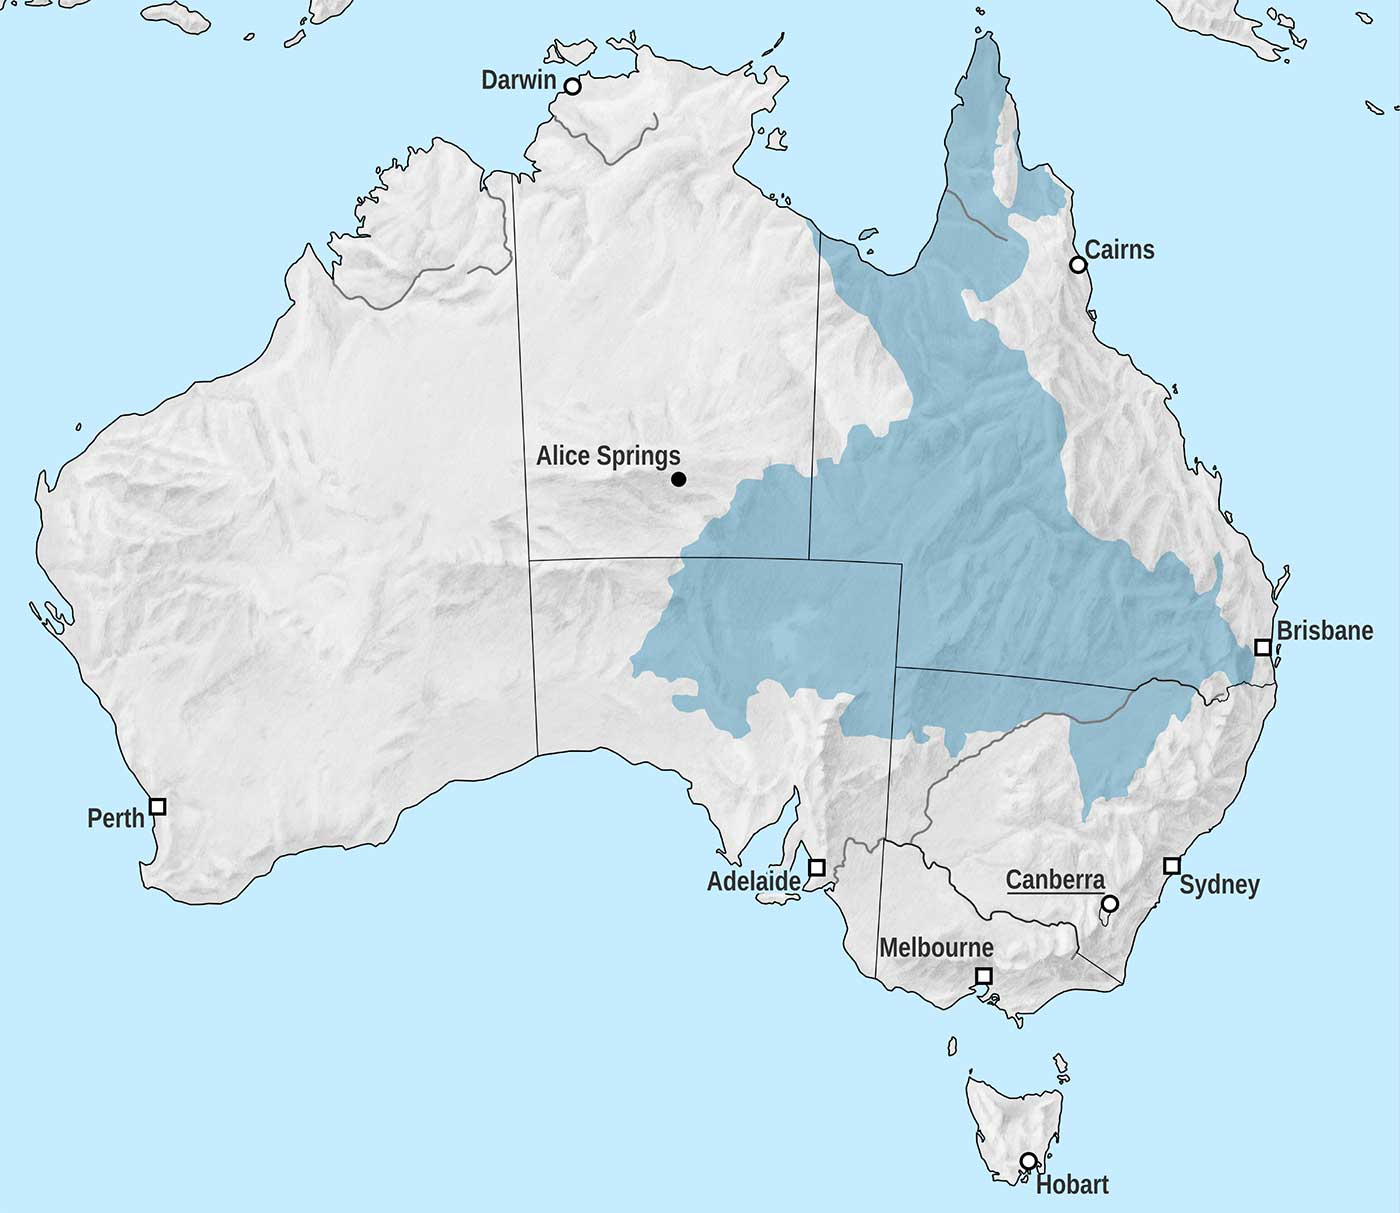 Map of Australia showing the Great Artesian Basin, which covers most of Queensland and stretches into the Northern Territory, South Austrlaia and New South Wales.  - click to view larger image